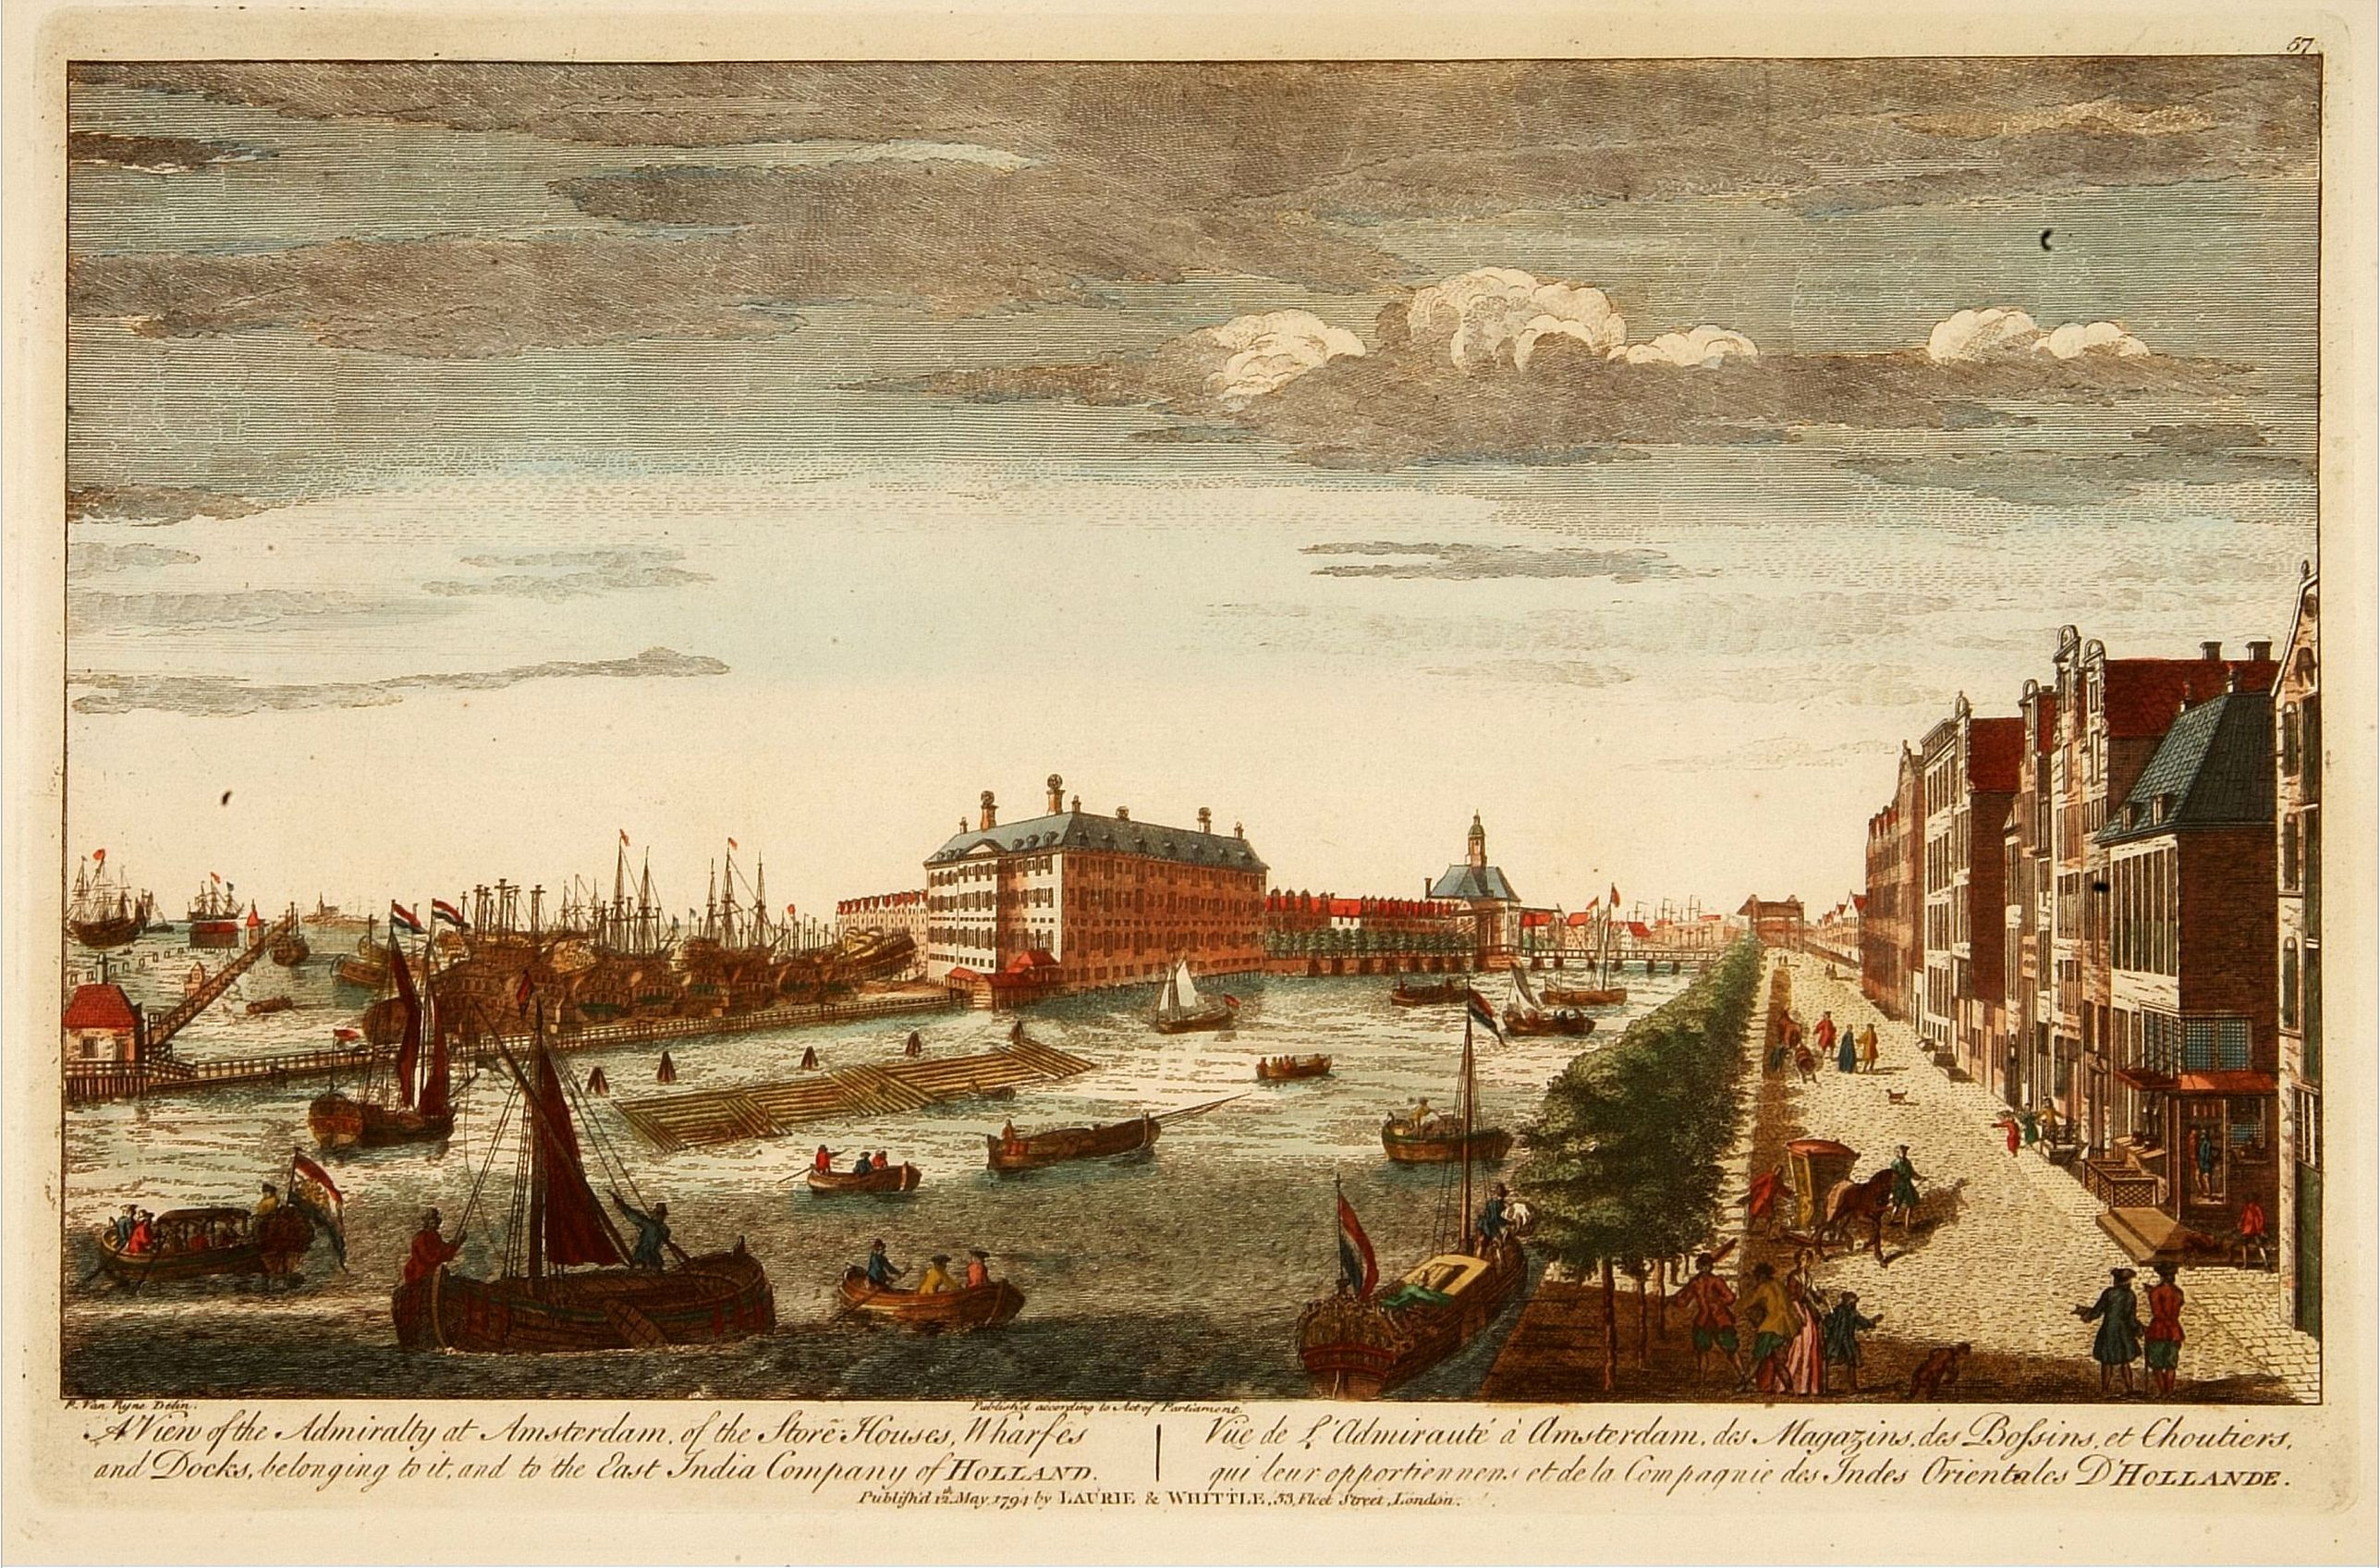 LAURIE & WHITTLE. -  A view of the Admiralty at Amsterdam of the store houses, wharfes.. To the East India Company of Holland. . .